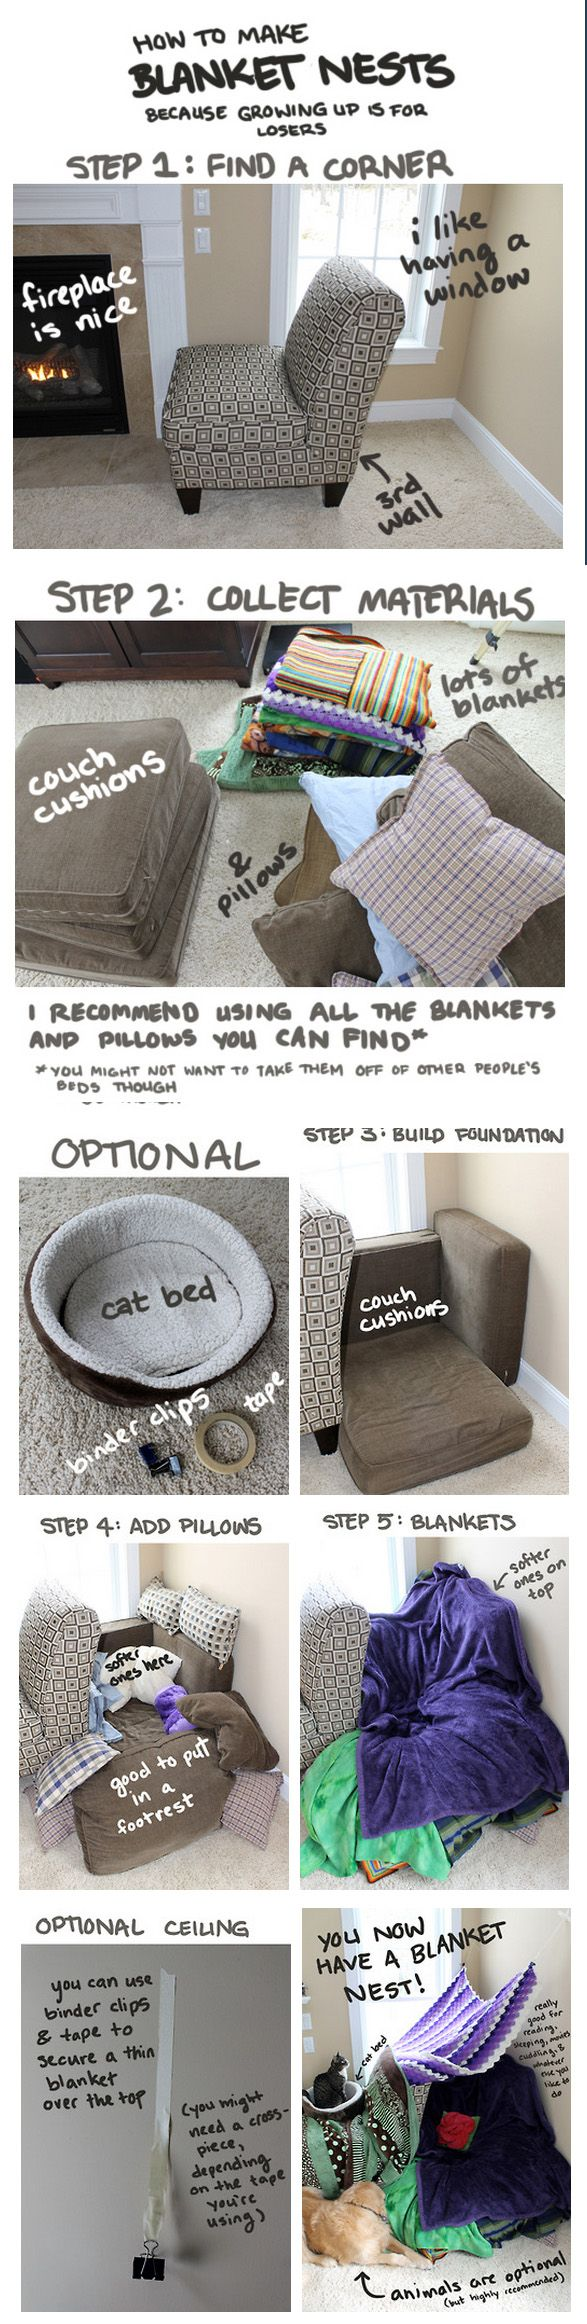 how to build a blanket nest... looks like a great idea